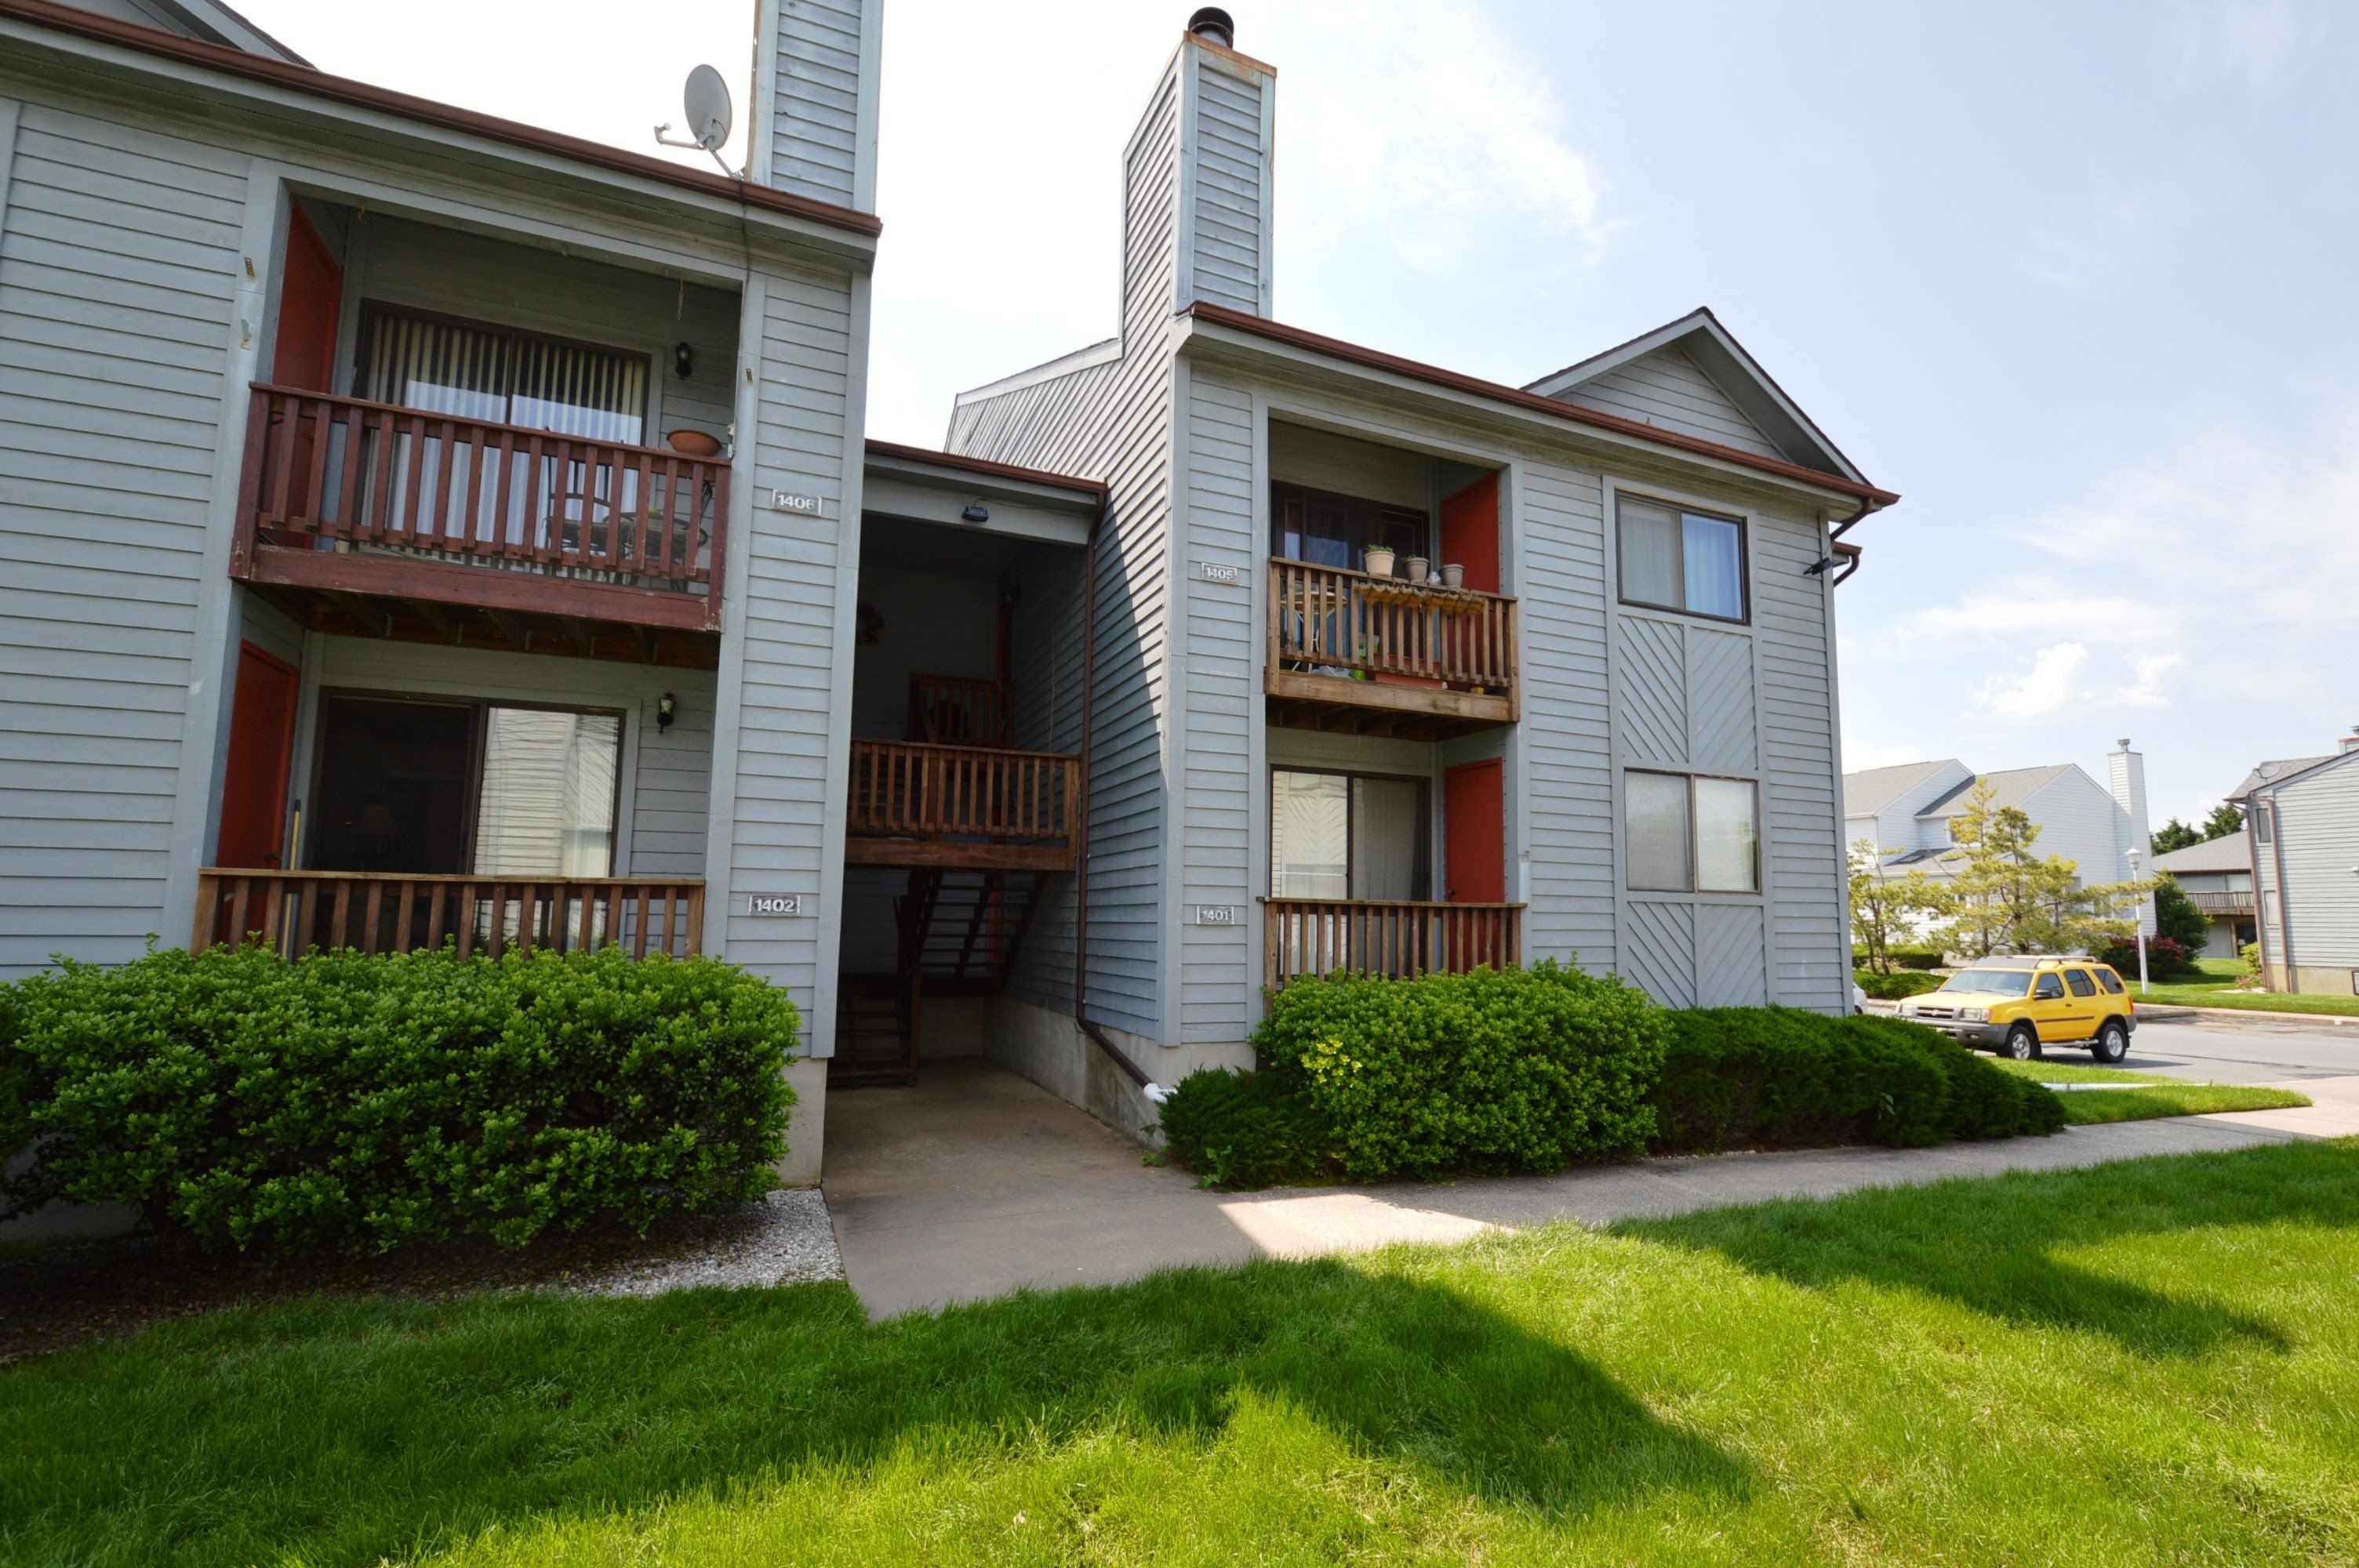 Annapolis Property Services originally shared House for